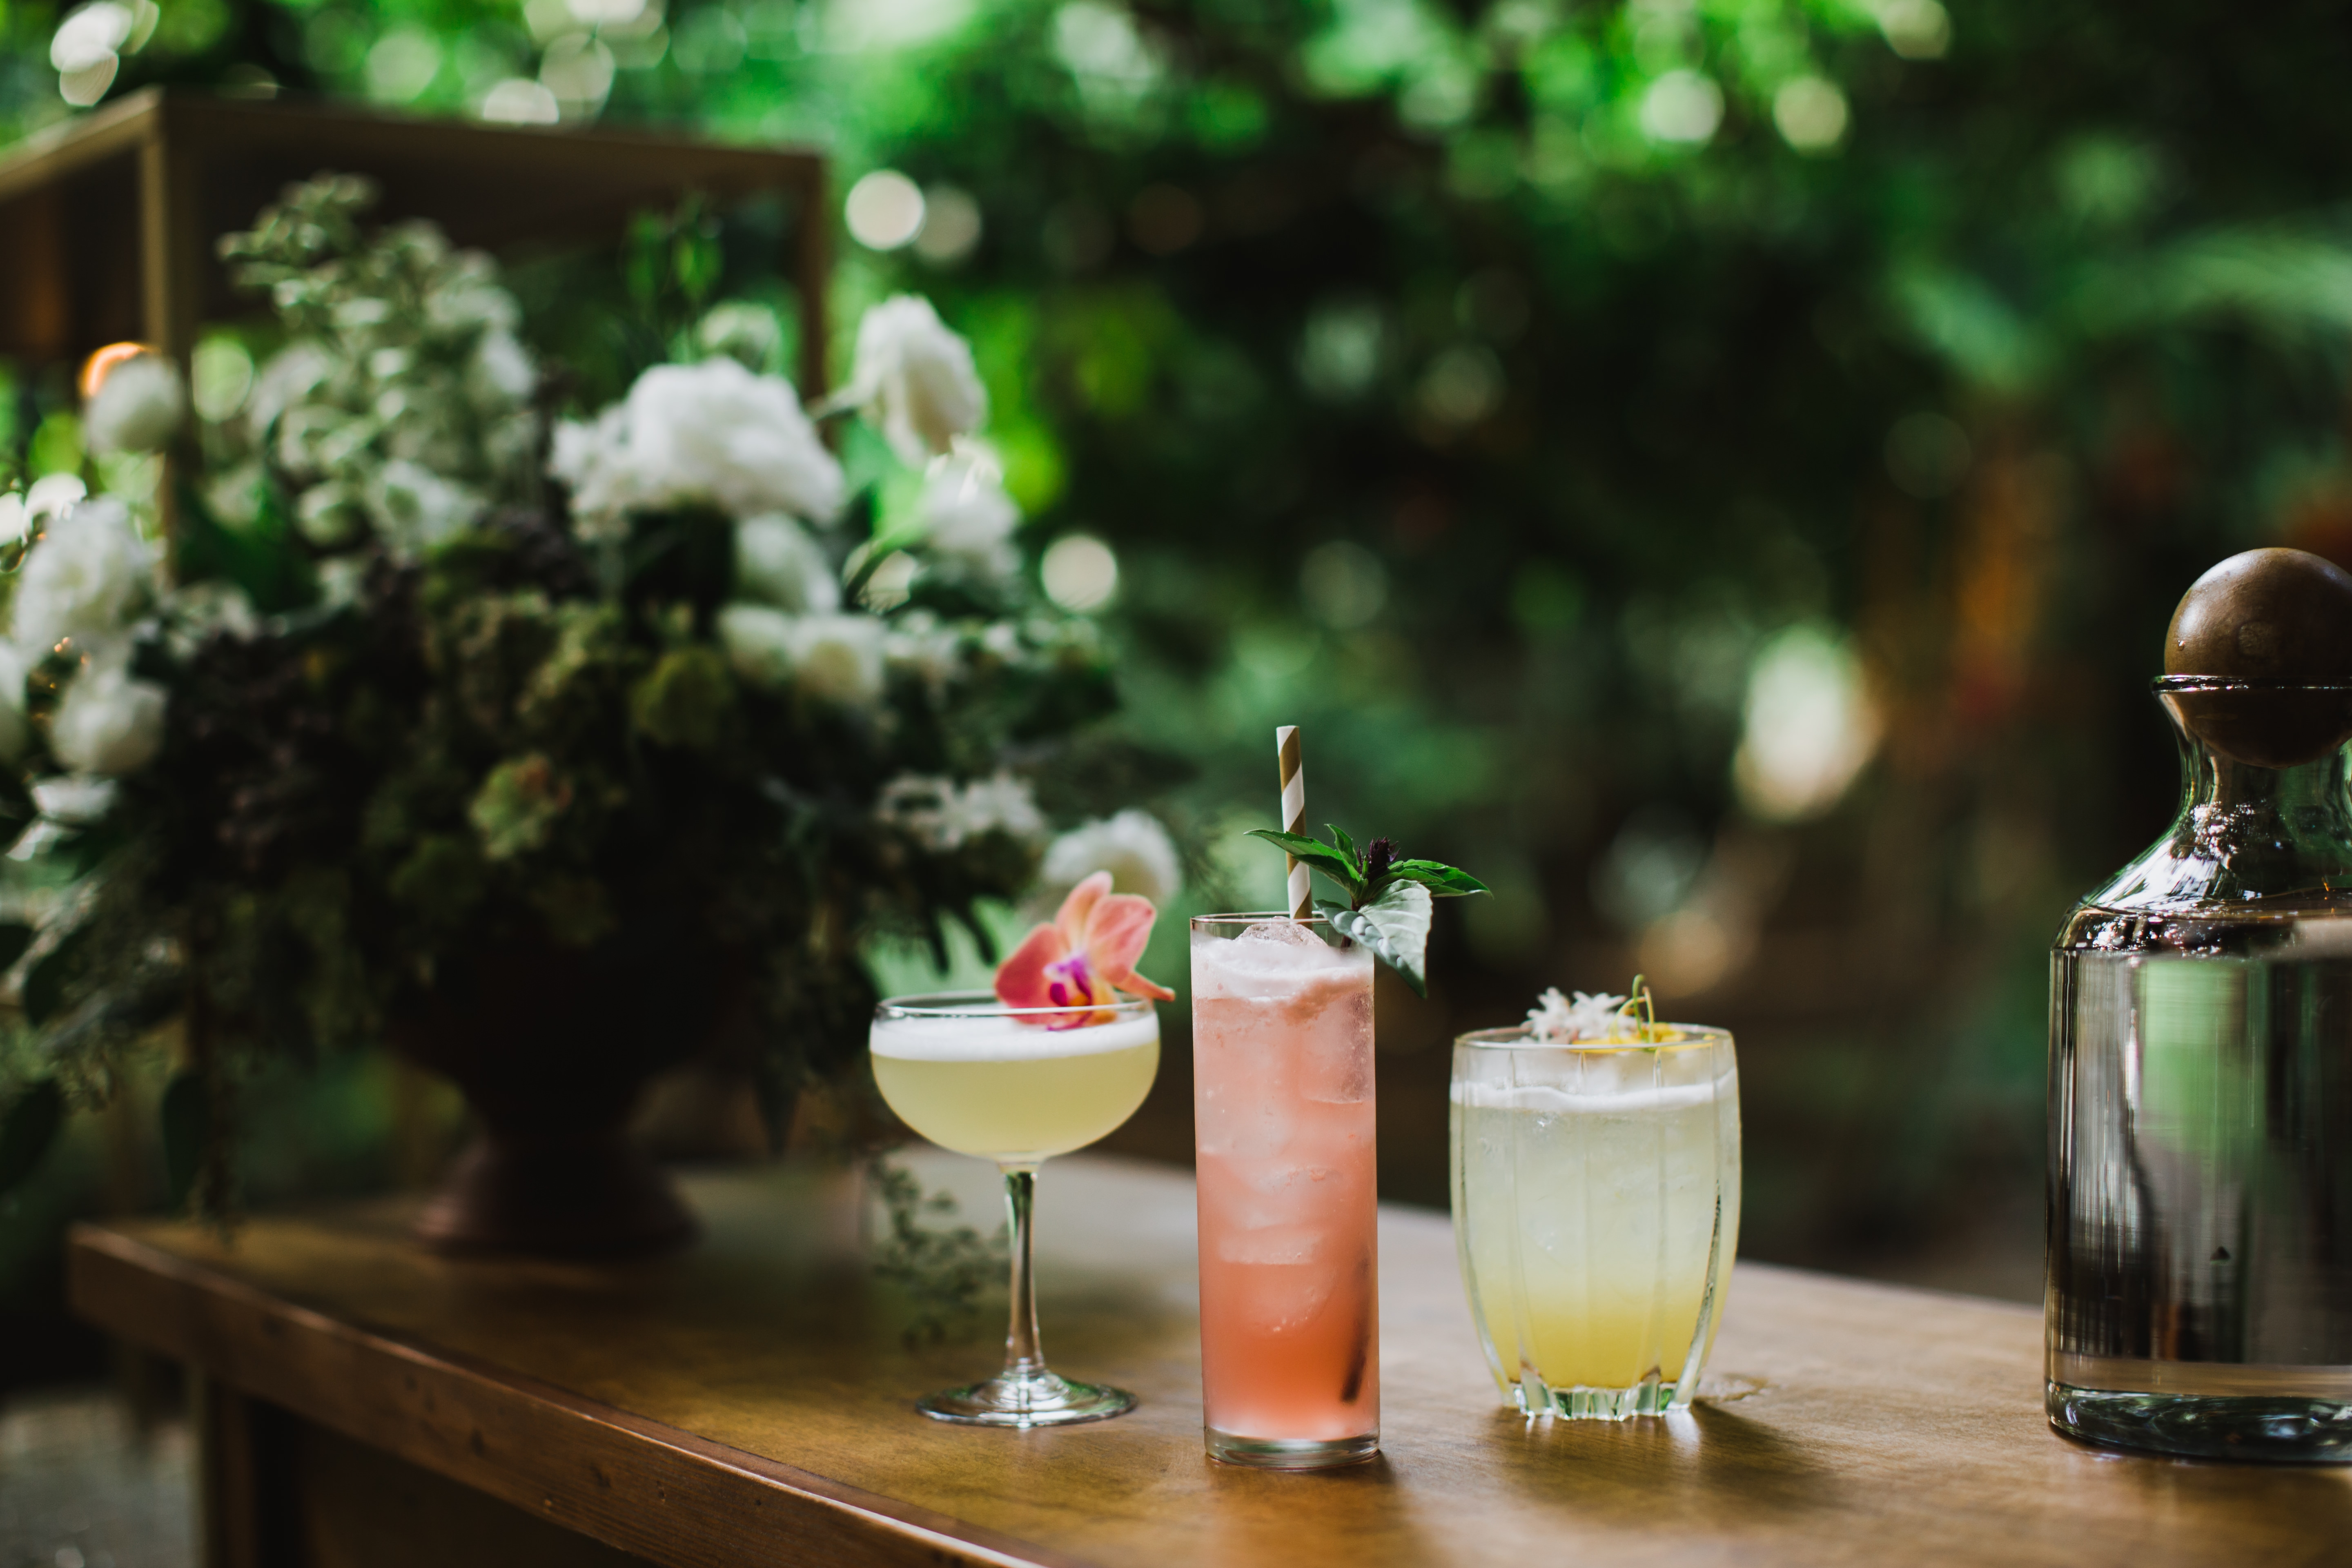 Celebrity Chef Ryan Rondeno Gives Top Tips for Stepping Up the Classic Mocktail or Cocktail